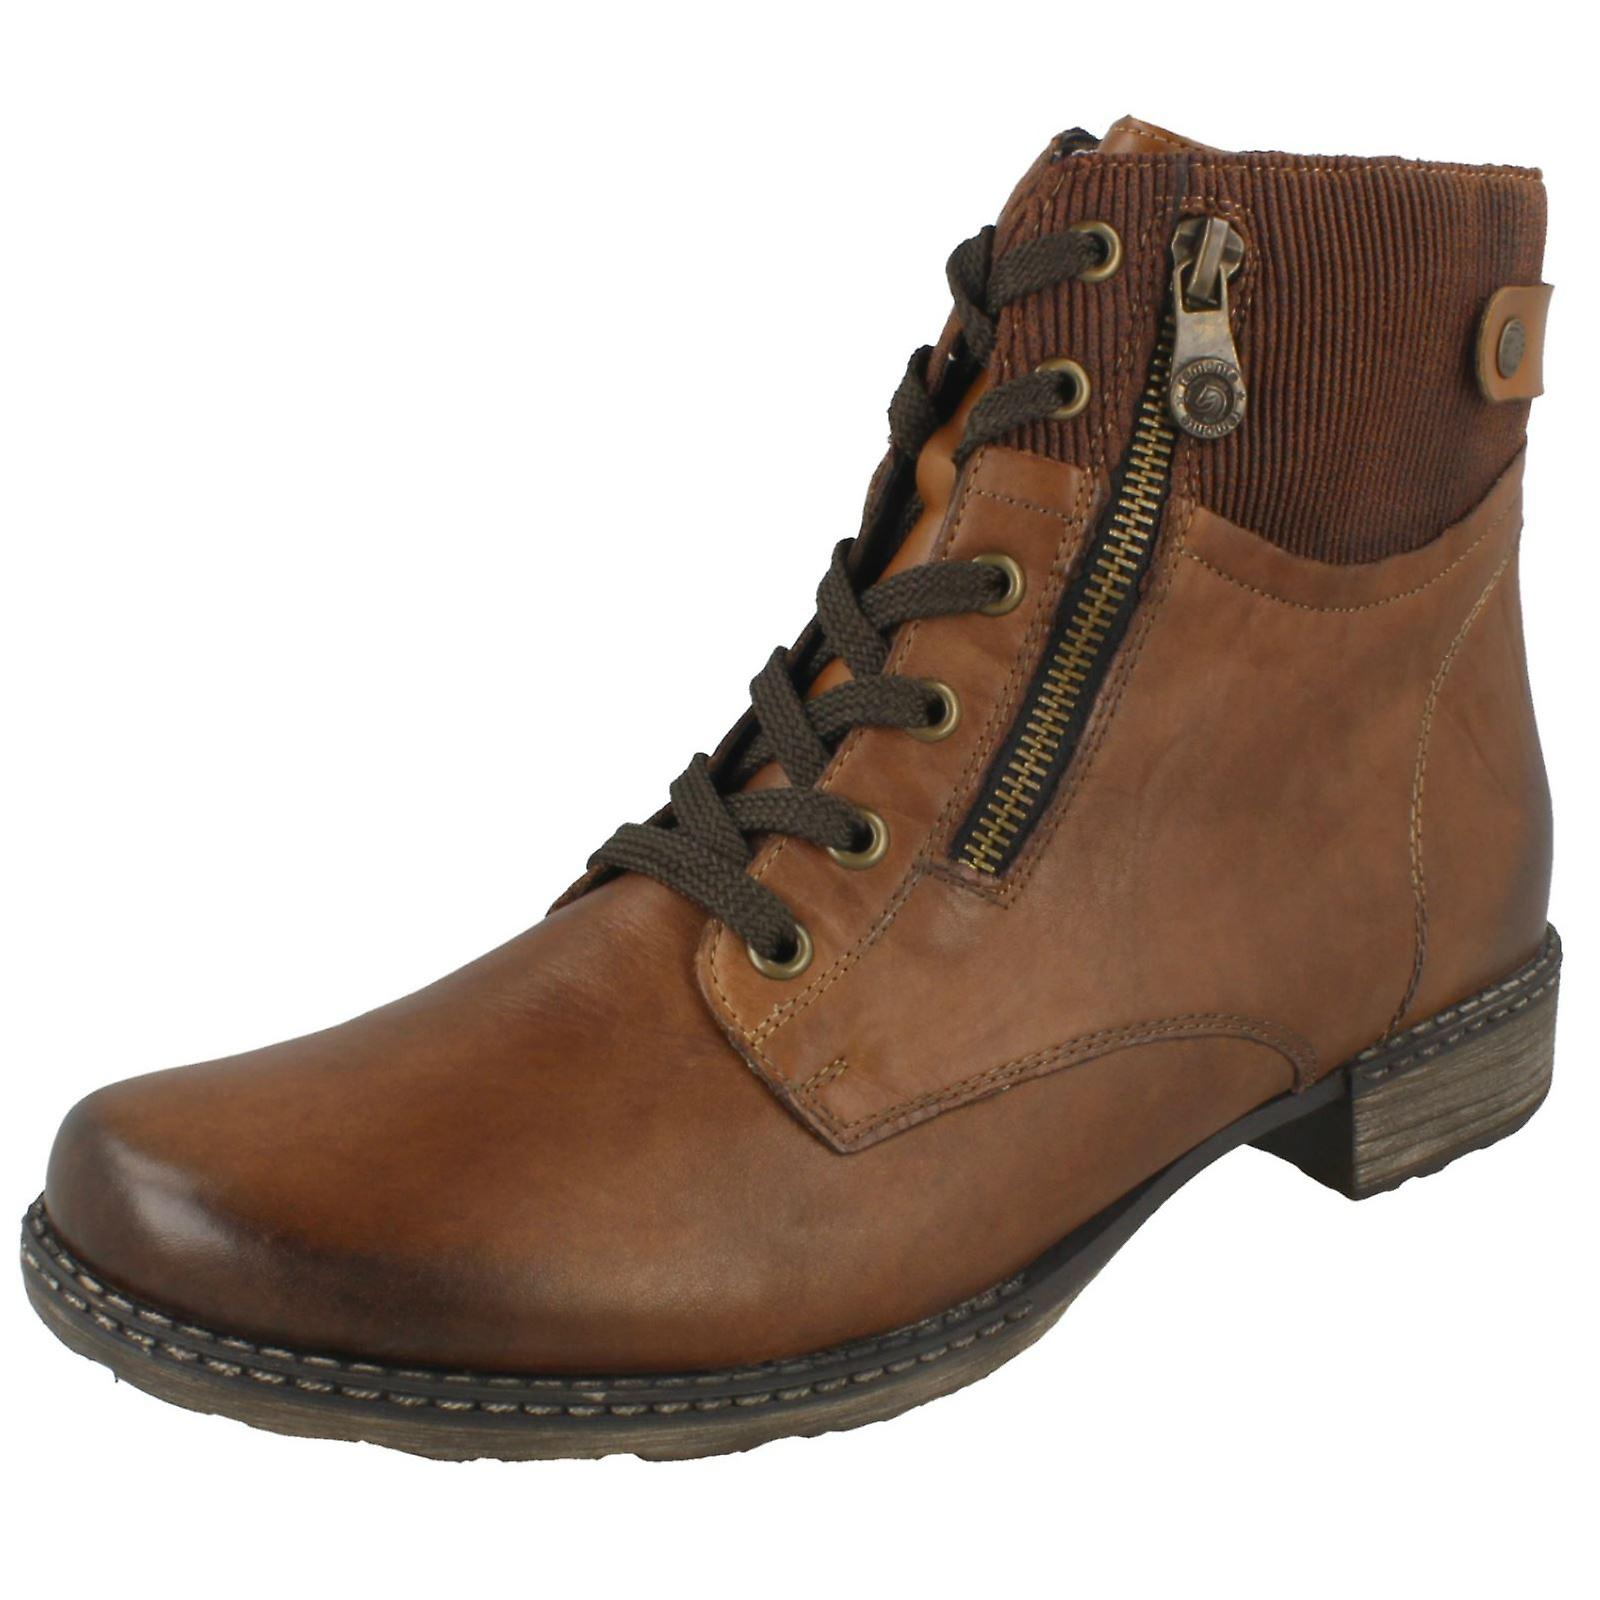 Ladies Remonte Ankle Boots D4379-25 - Brown Leather - UK Size 8 - EU Size 42 - US Size 10 XEj6d